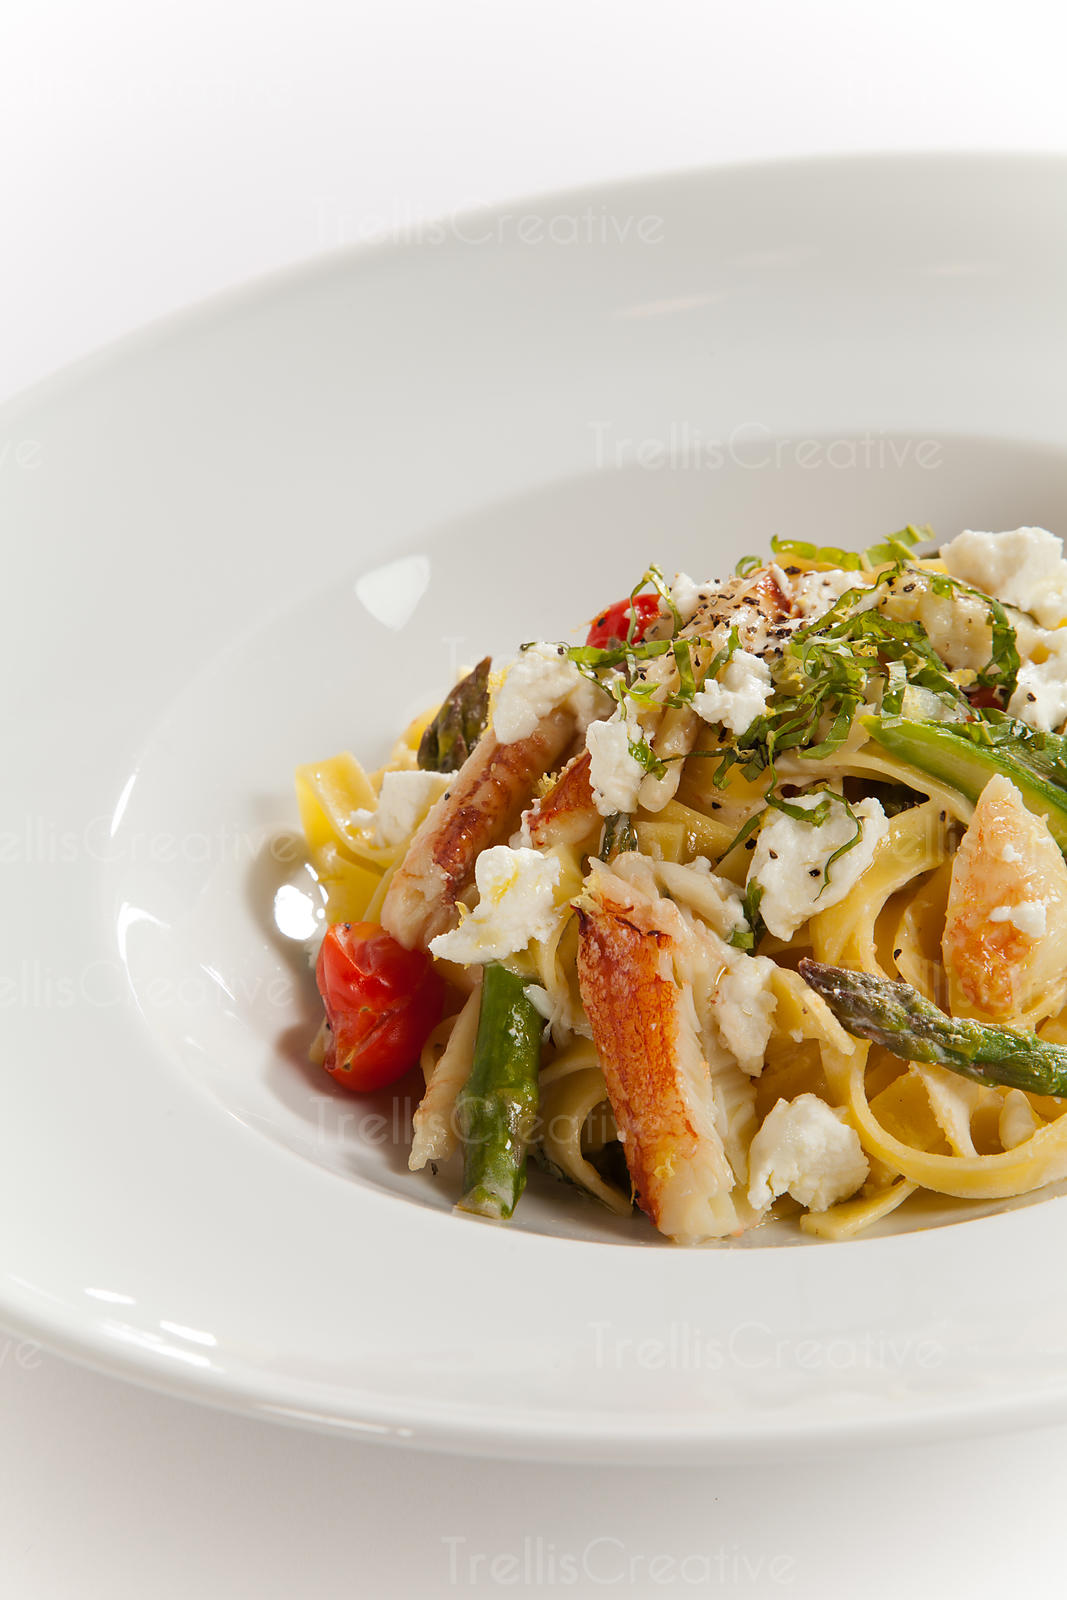 A bowl of linguini topped with crab meat, goat cheese and vegetables